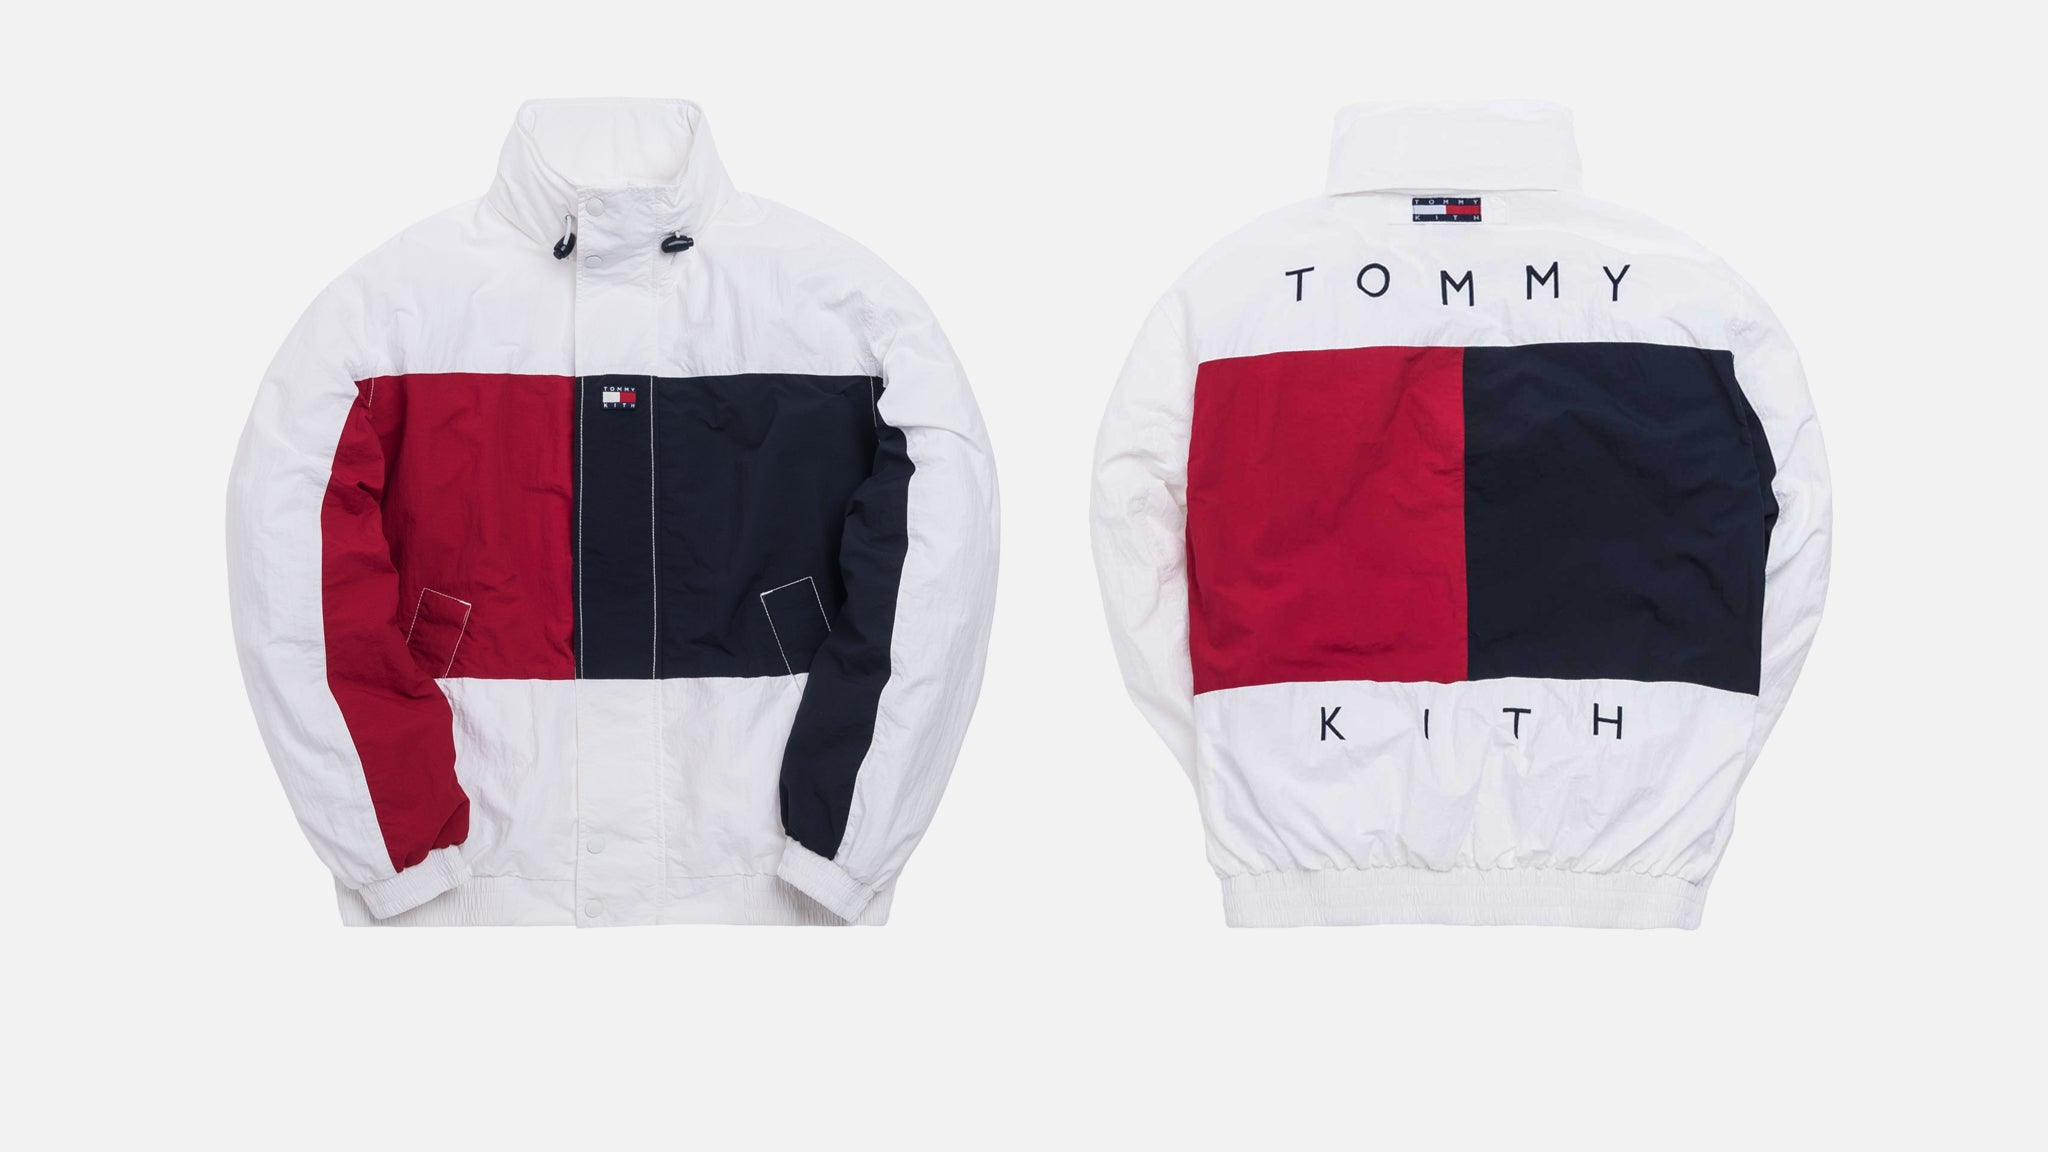 tommy hilfiger kith collection